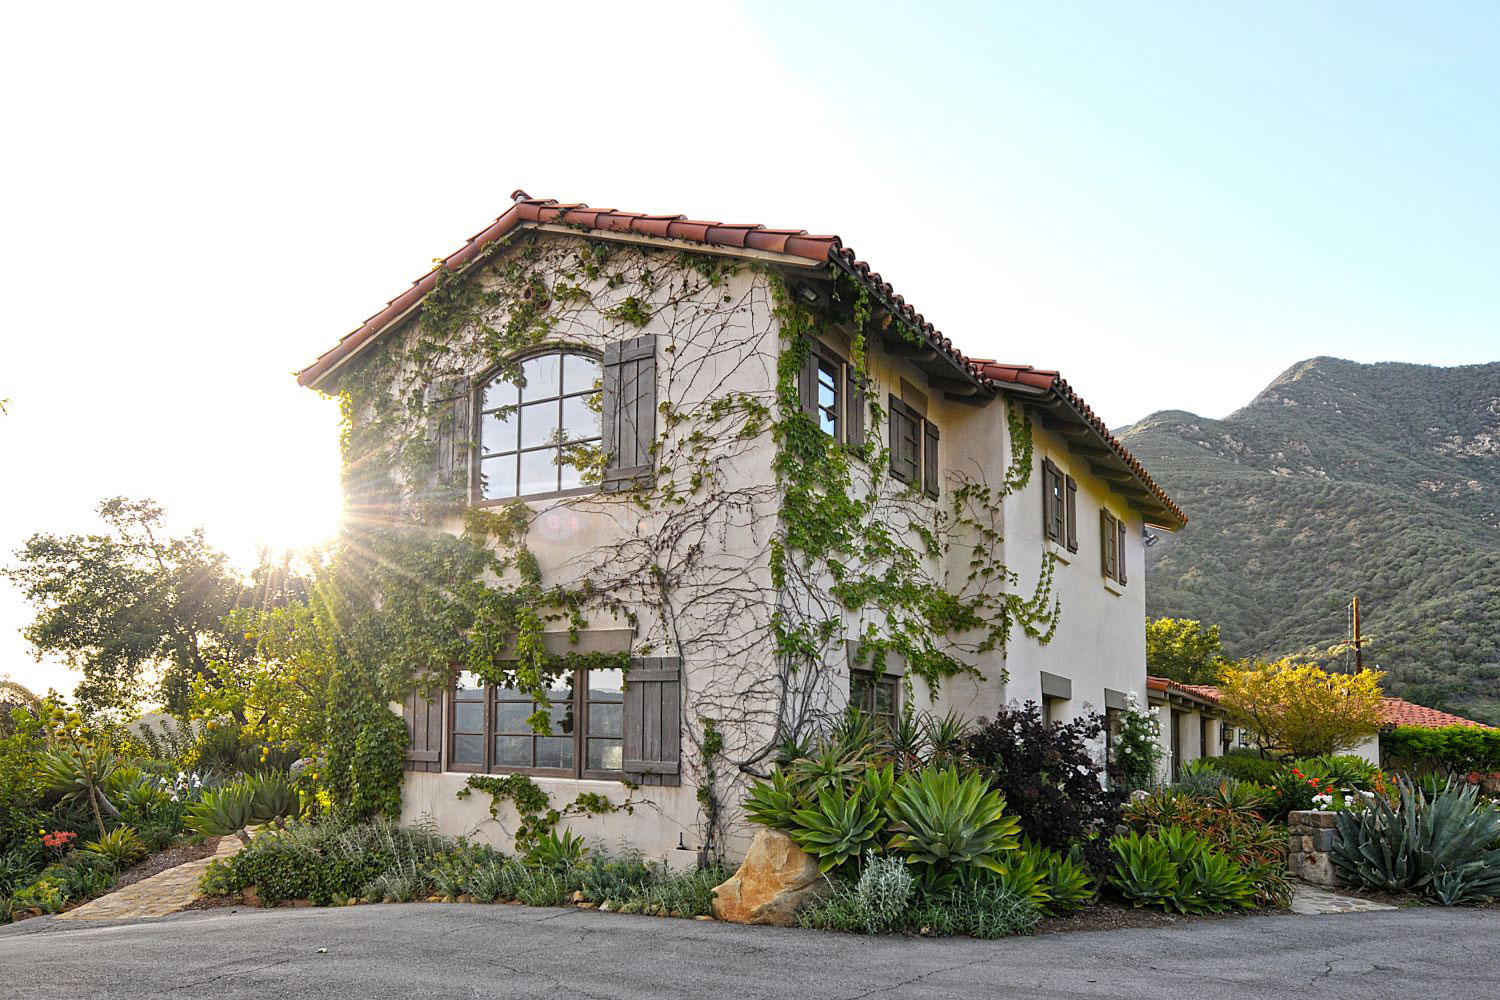 The stately Mediterranean retreat is surrounded by the Los Padres National Forest.